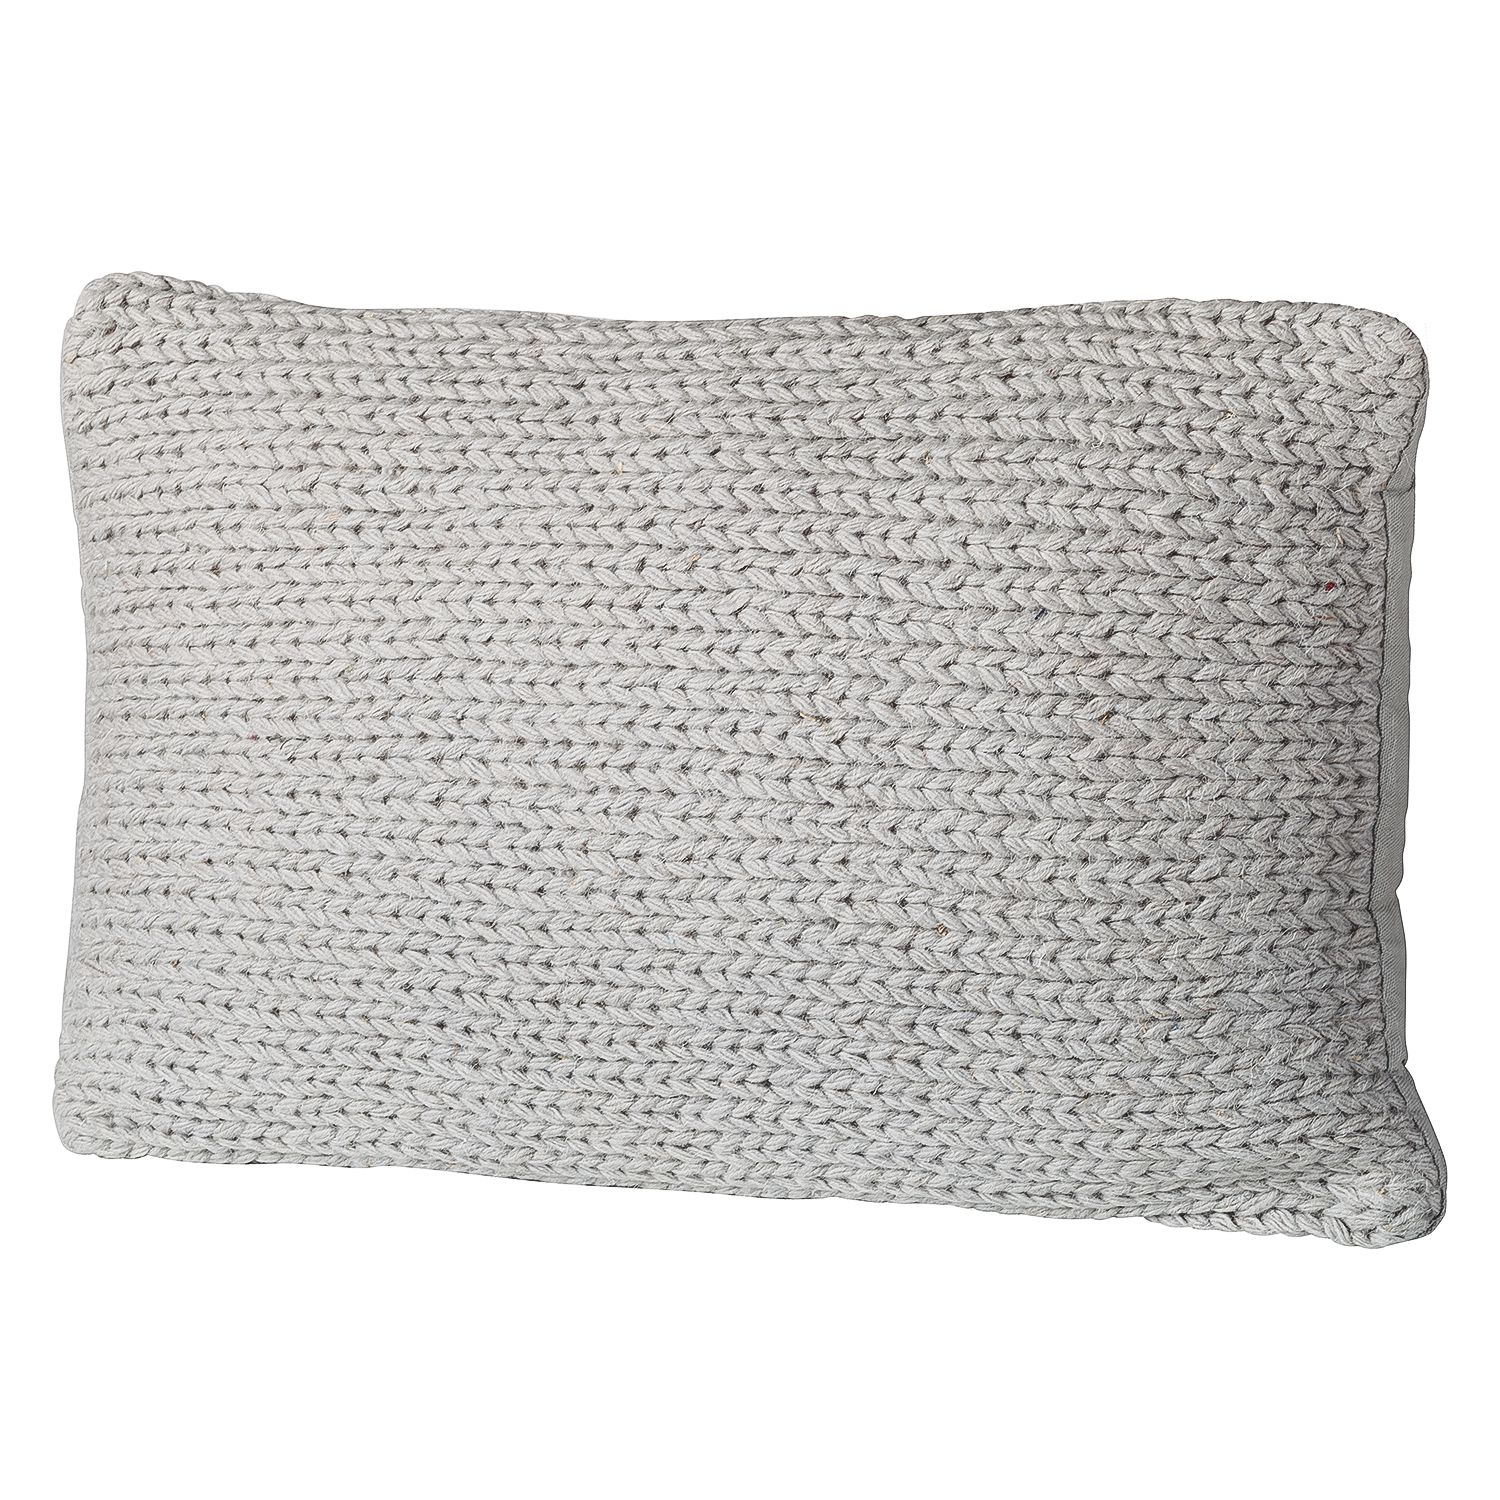 Home 24 - Coussin falaise - gris, ars manufacti